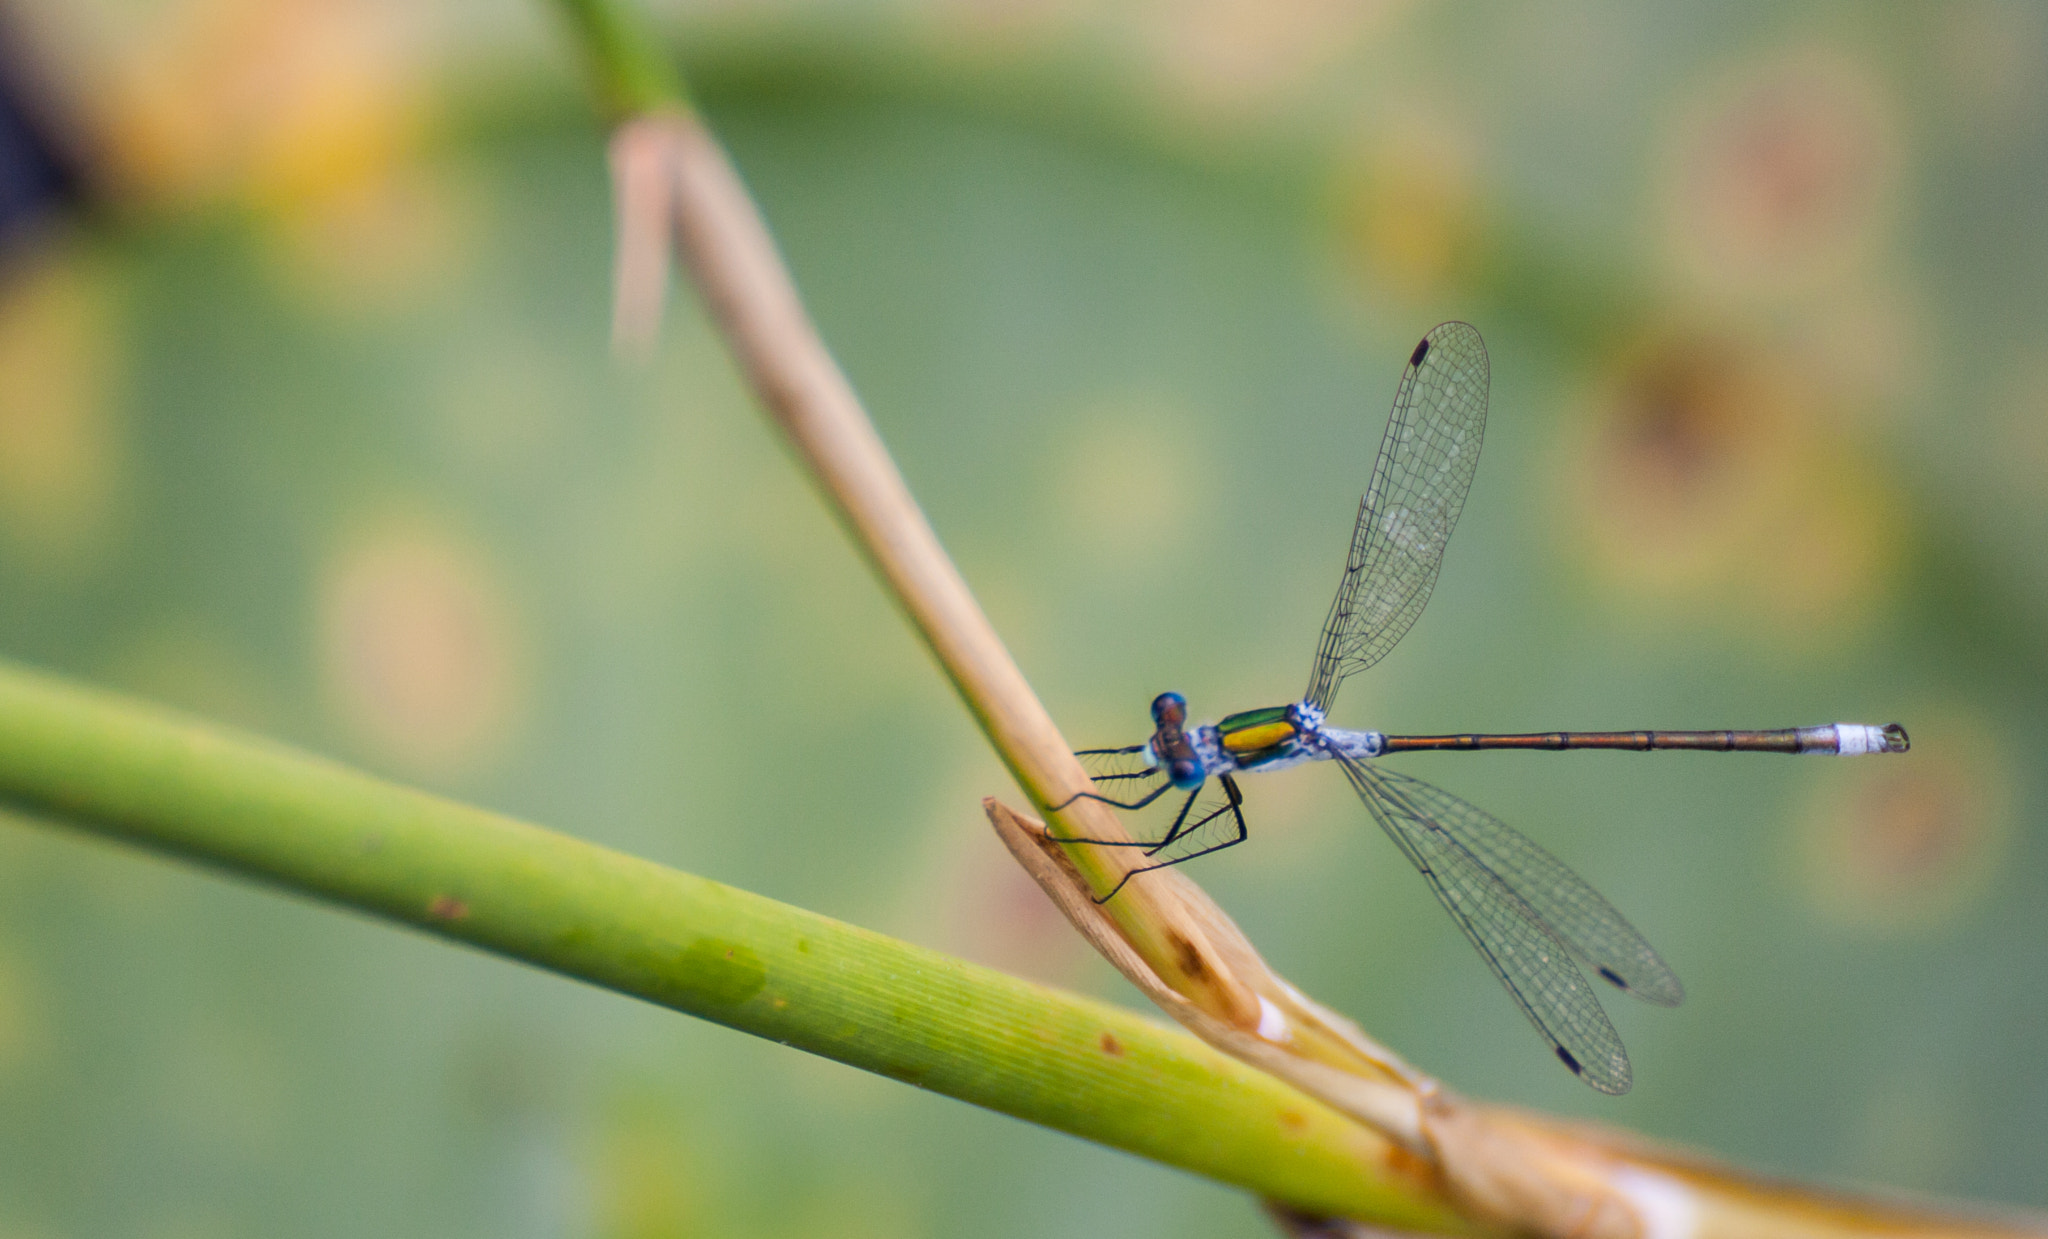 Photograph Dragonfly by Julian Wissmann on 500px